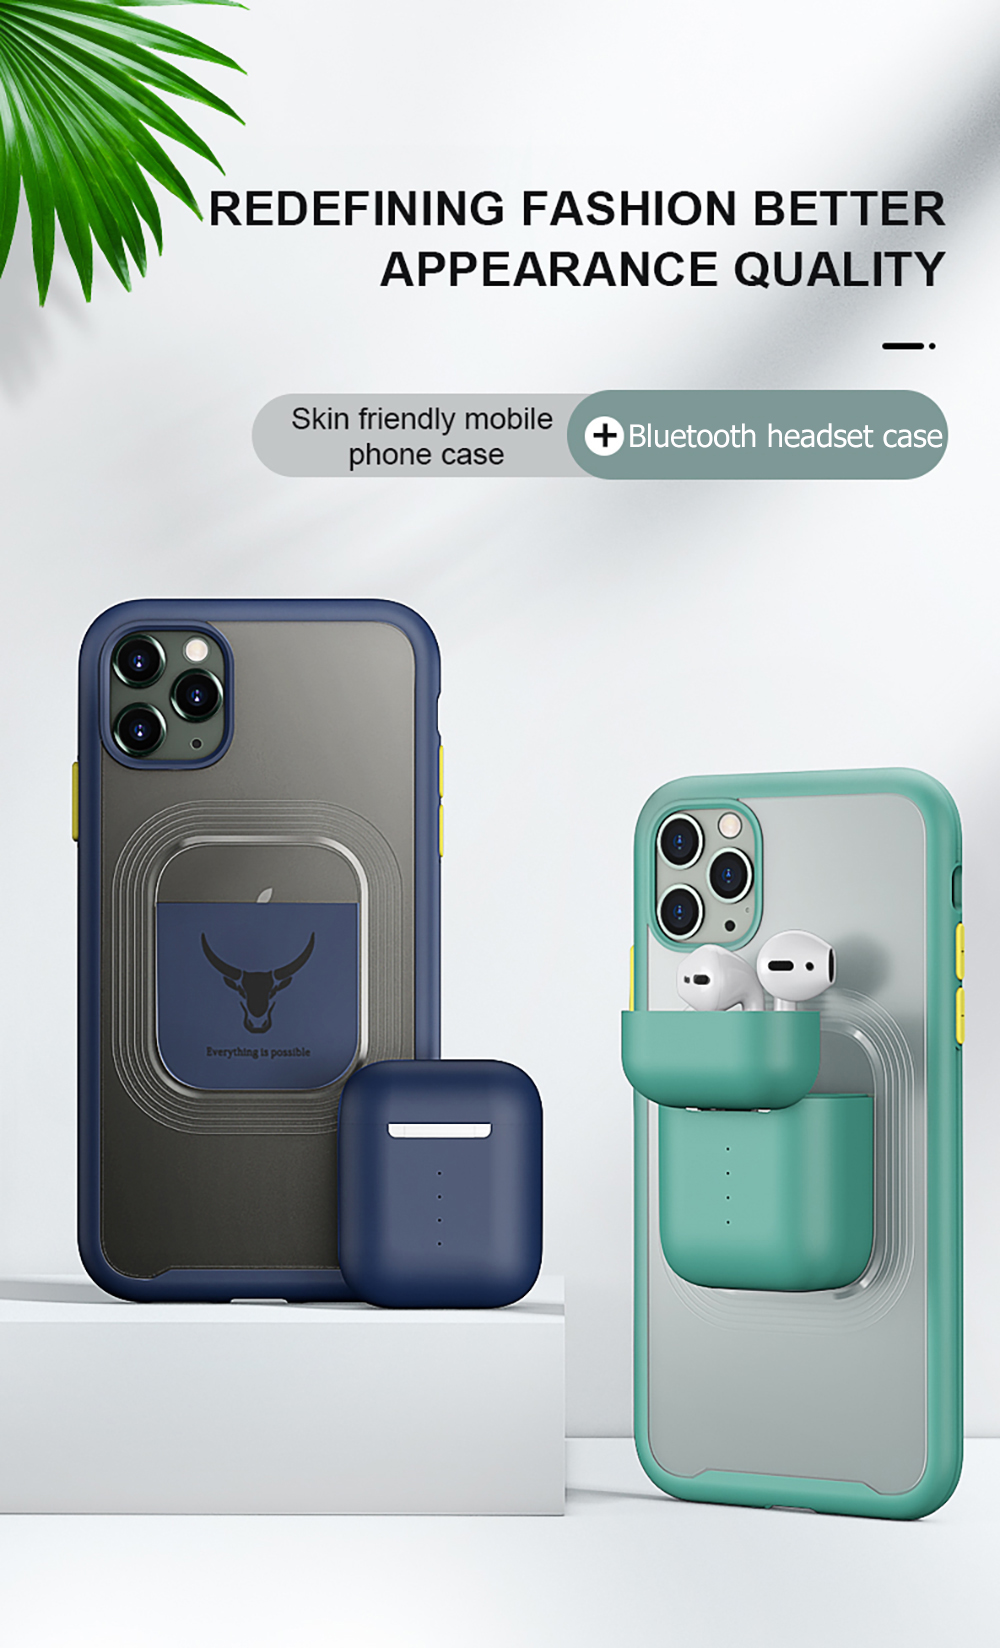 iPhone Case with Charging Case for AirPods